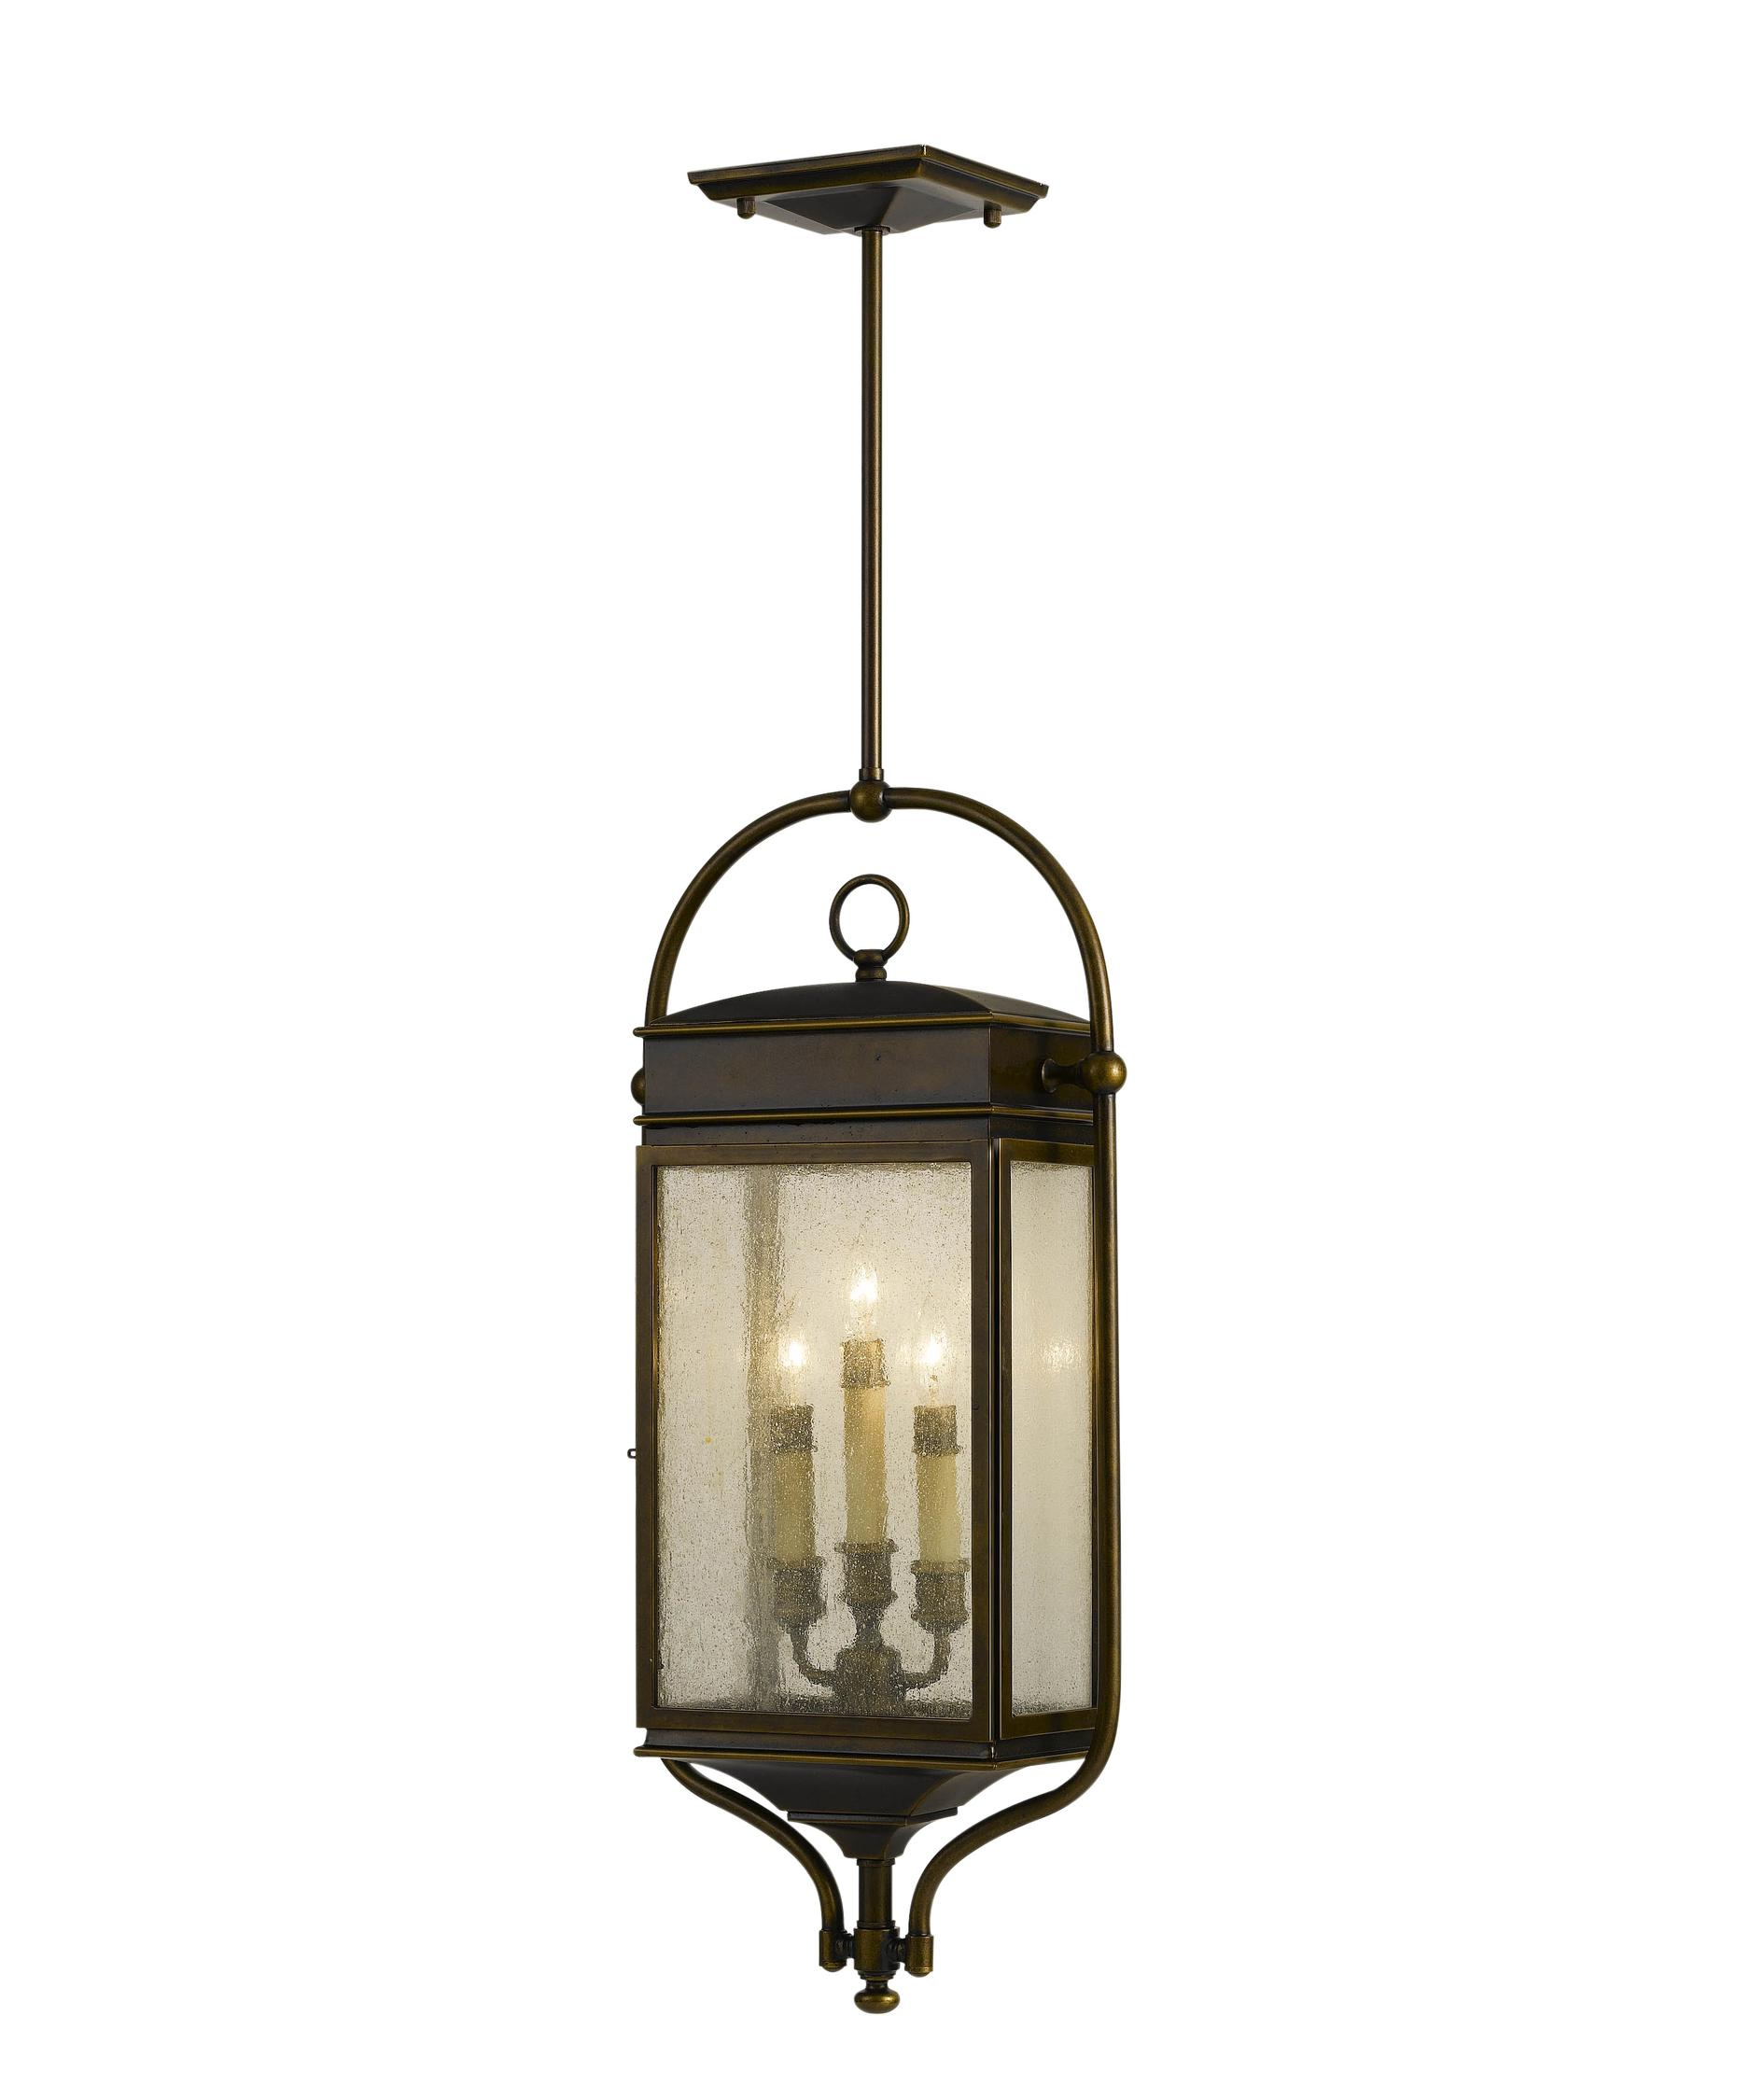 Outdoor hanging lamp - Murray Feiss Ol7411 Whitaker 13 Inch Wide 3 Light Outdoor Hanging Lantern Capitol Lighting 1 800lighting Com